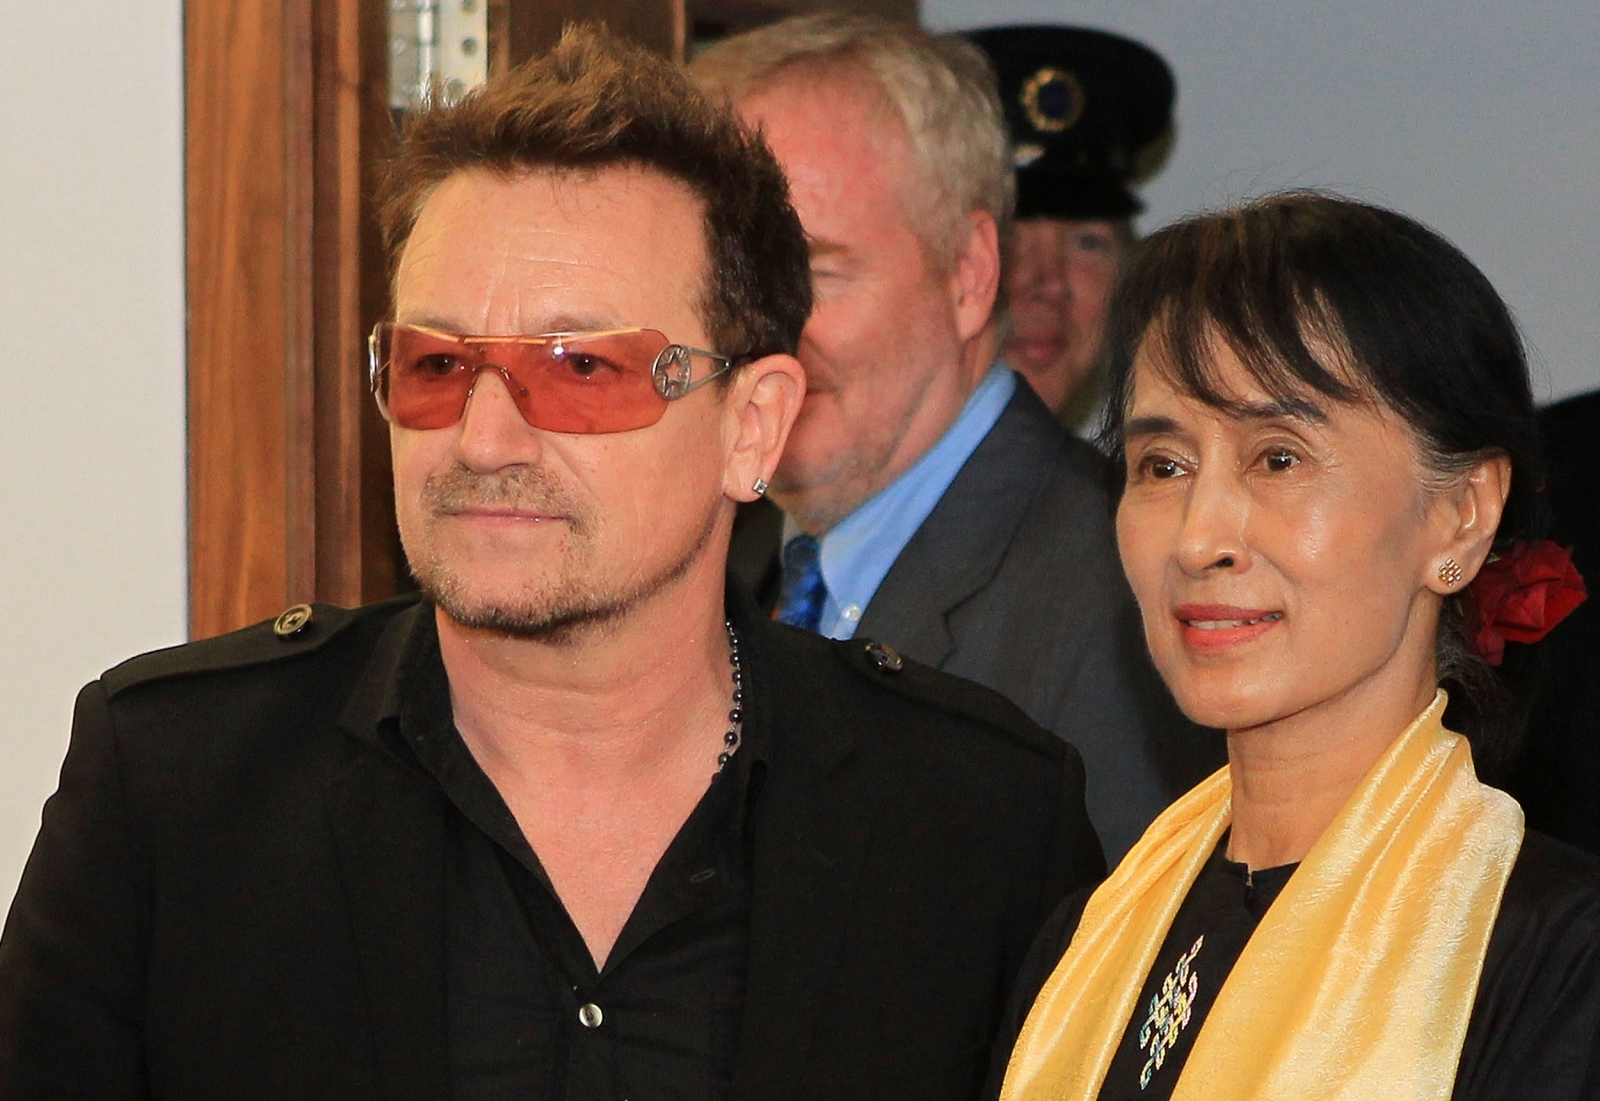 Bono and Aung San Suu Kyi